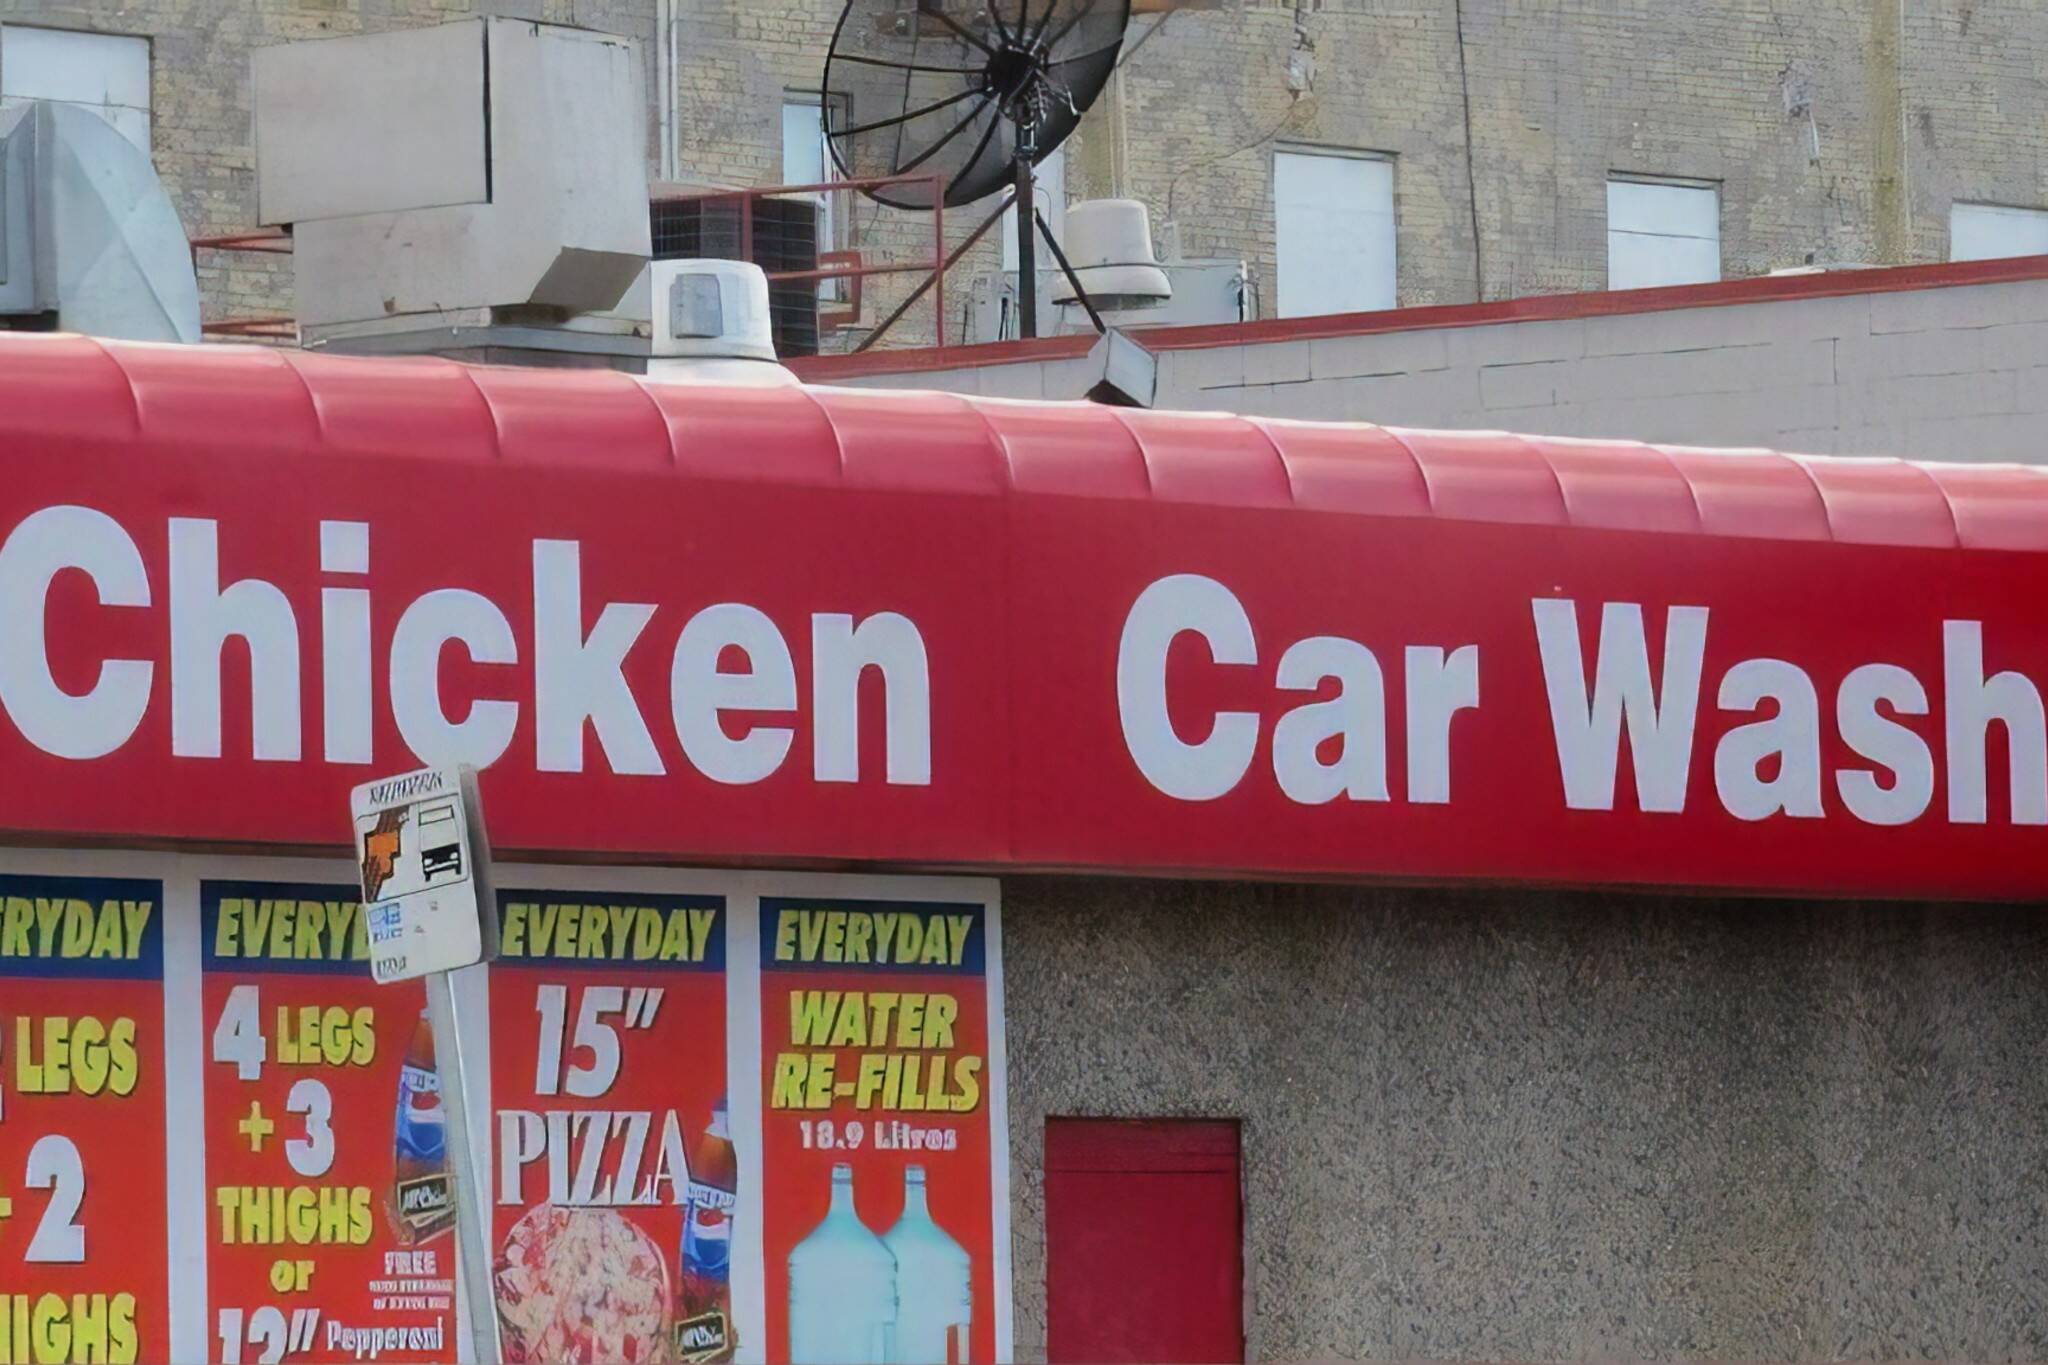 chicken car wash winnipeg